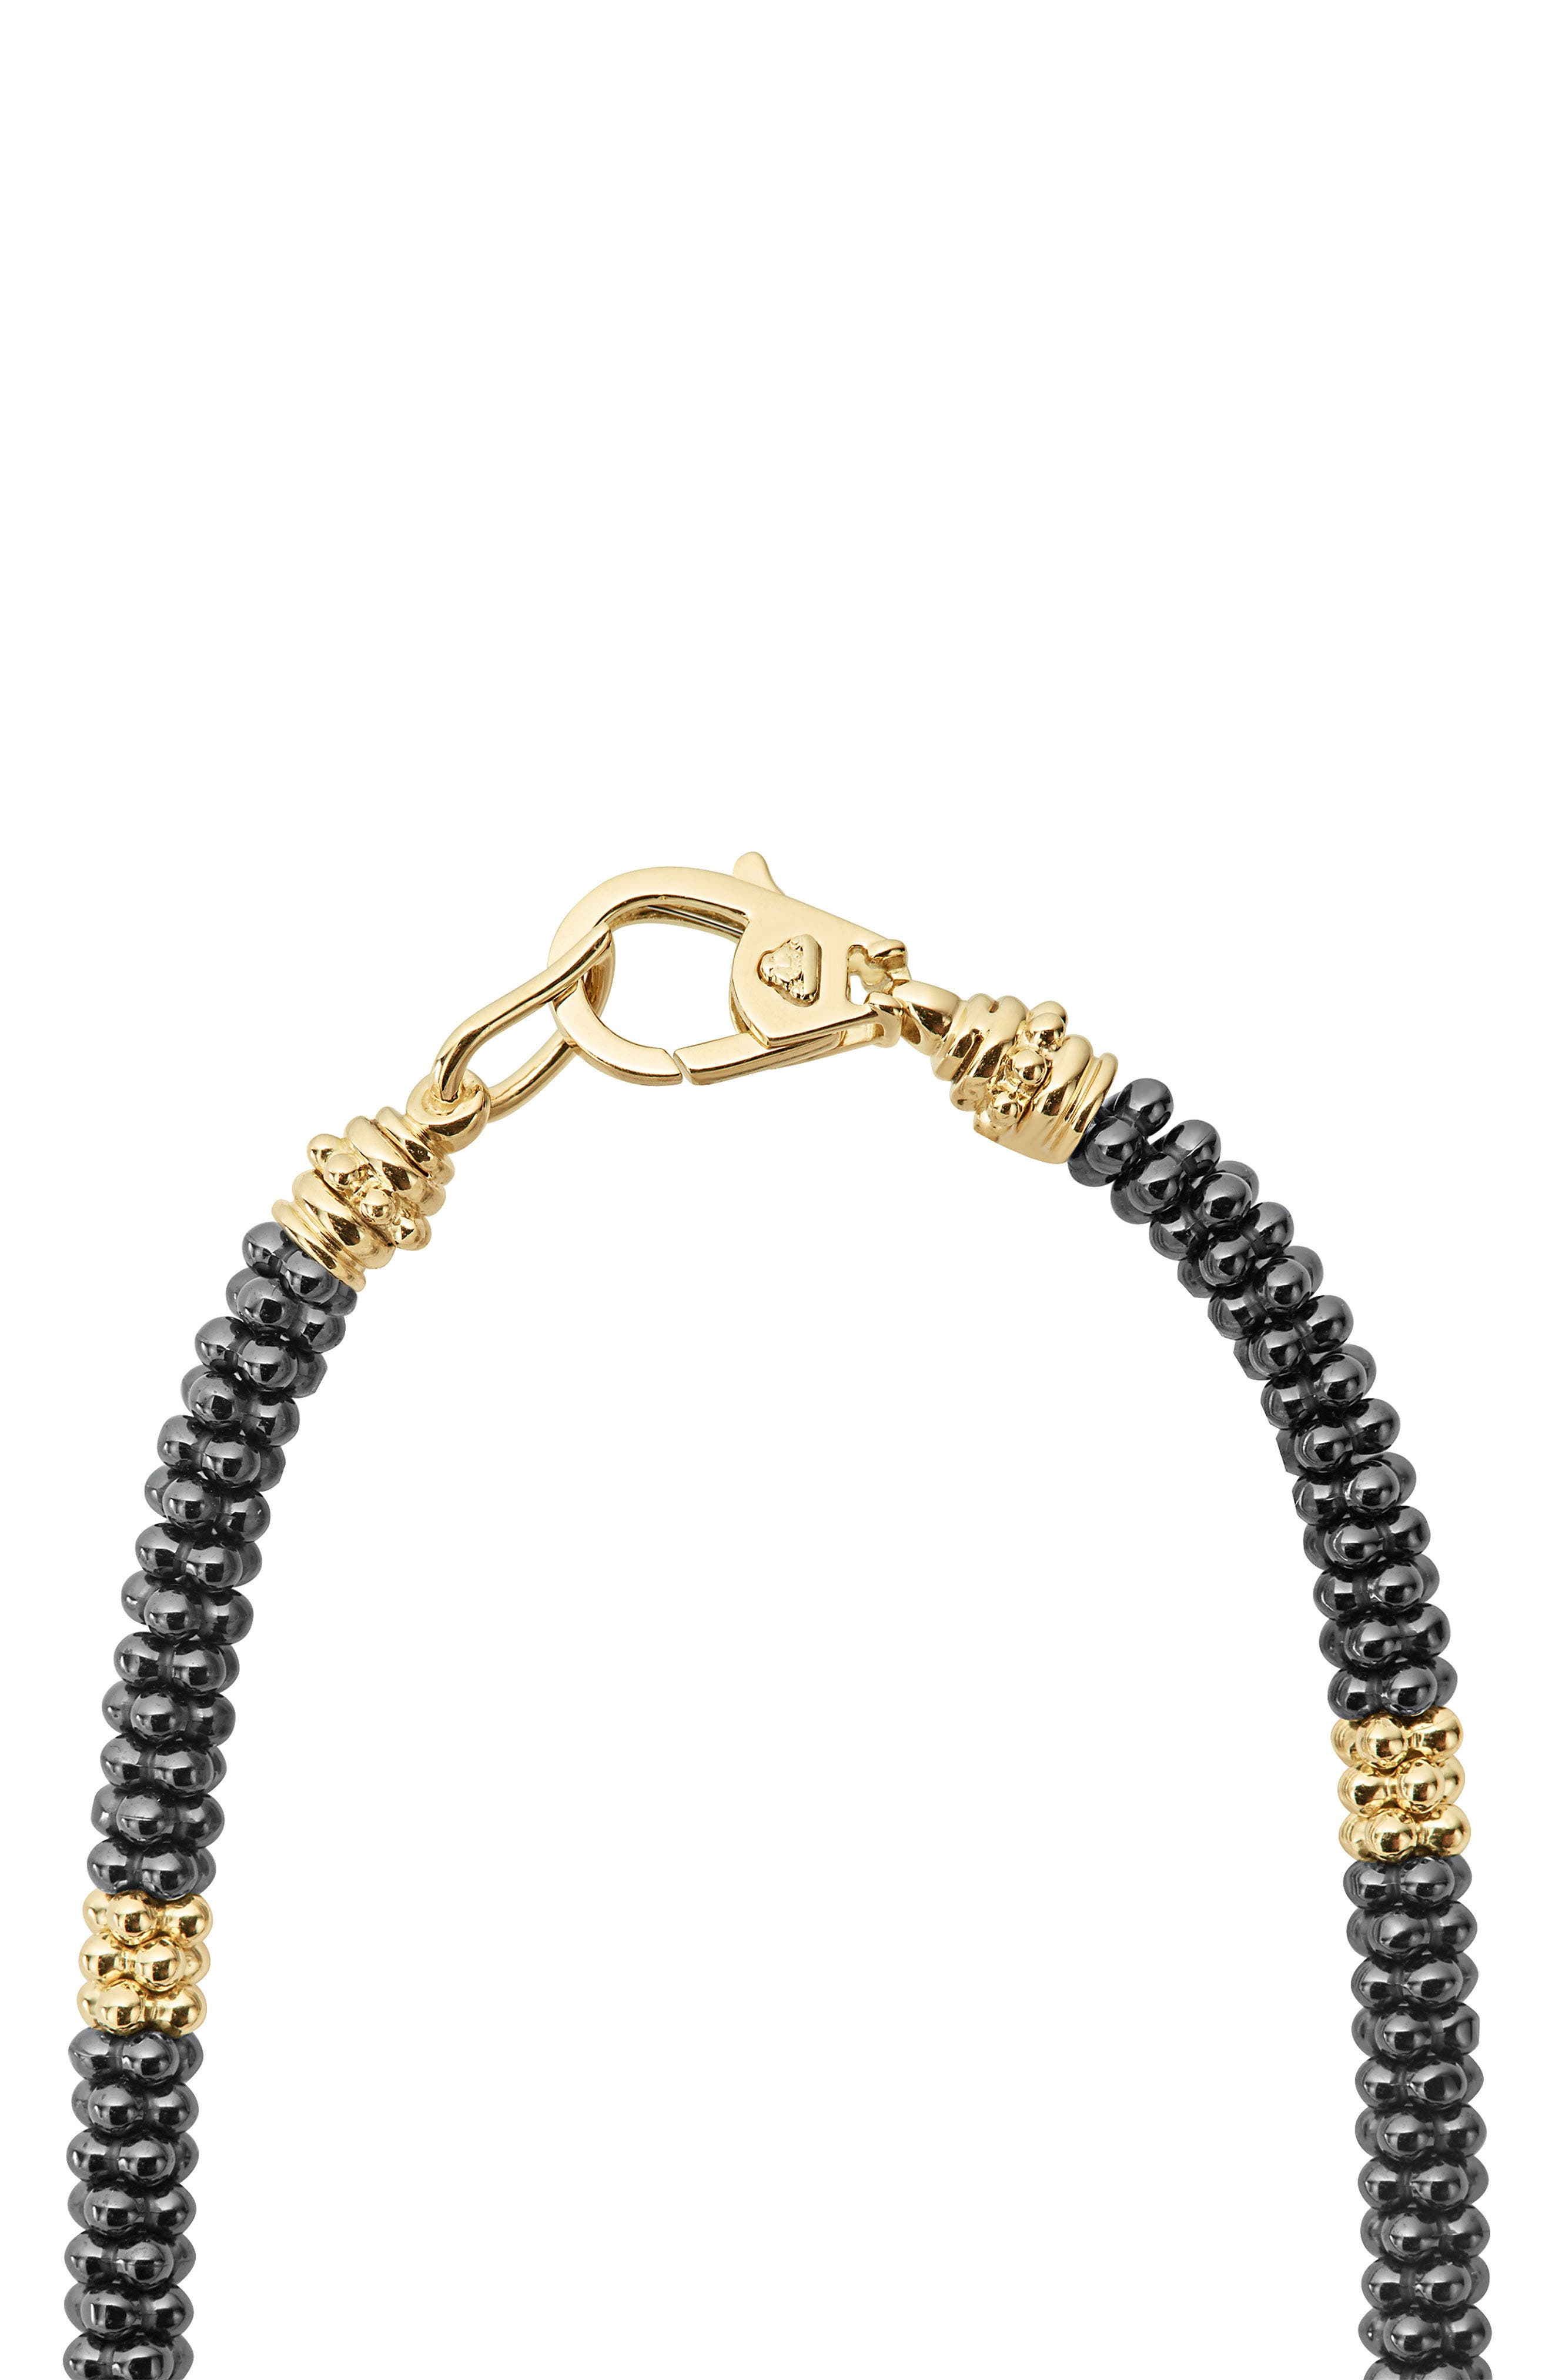 18K Gold & Black Caviar Bead Rope Necklace,                             Alternate thumbnail 3, color,                             Gold